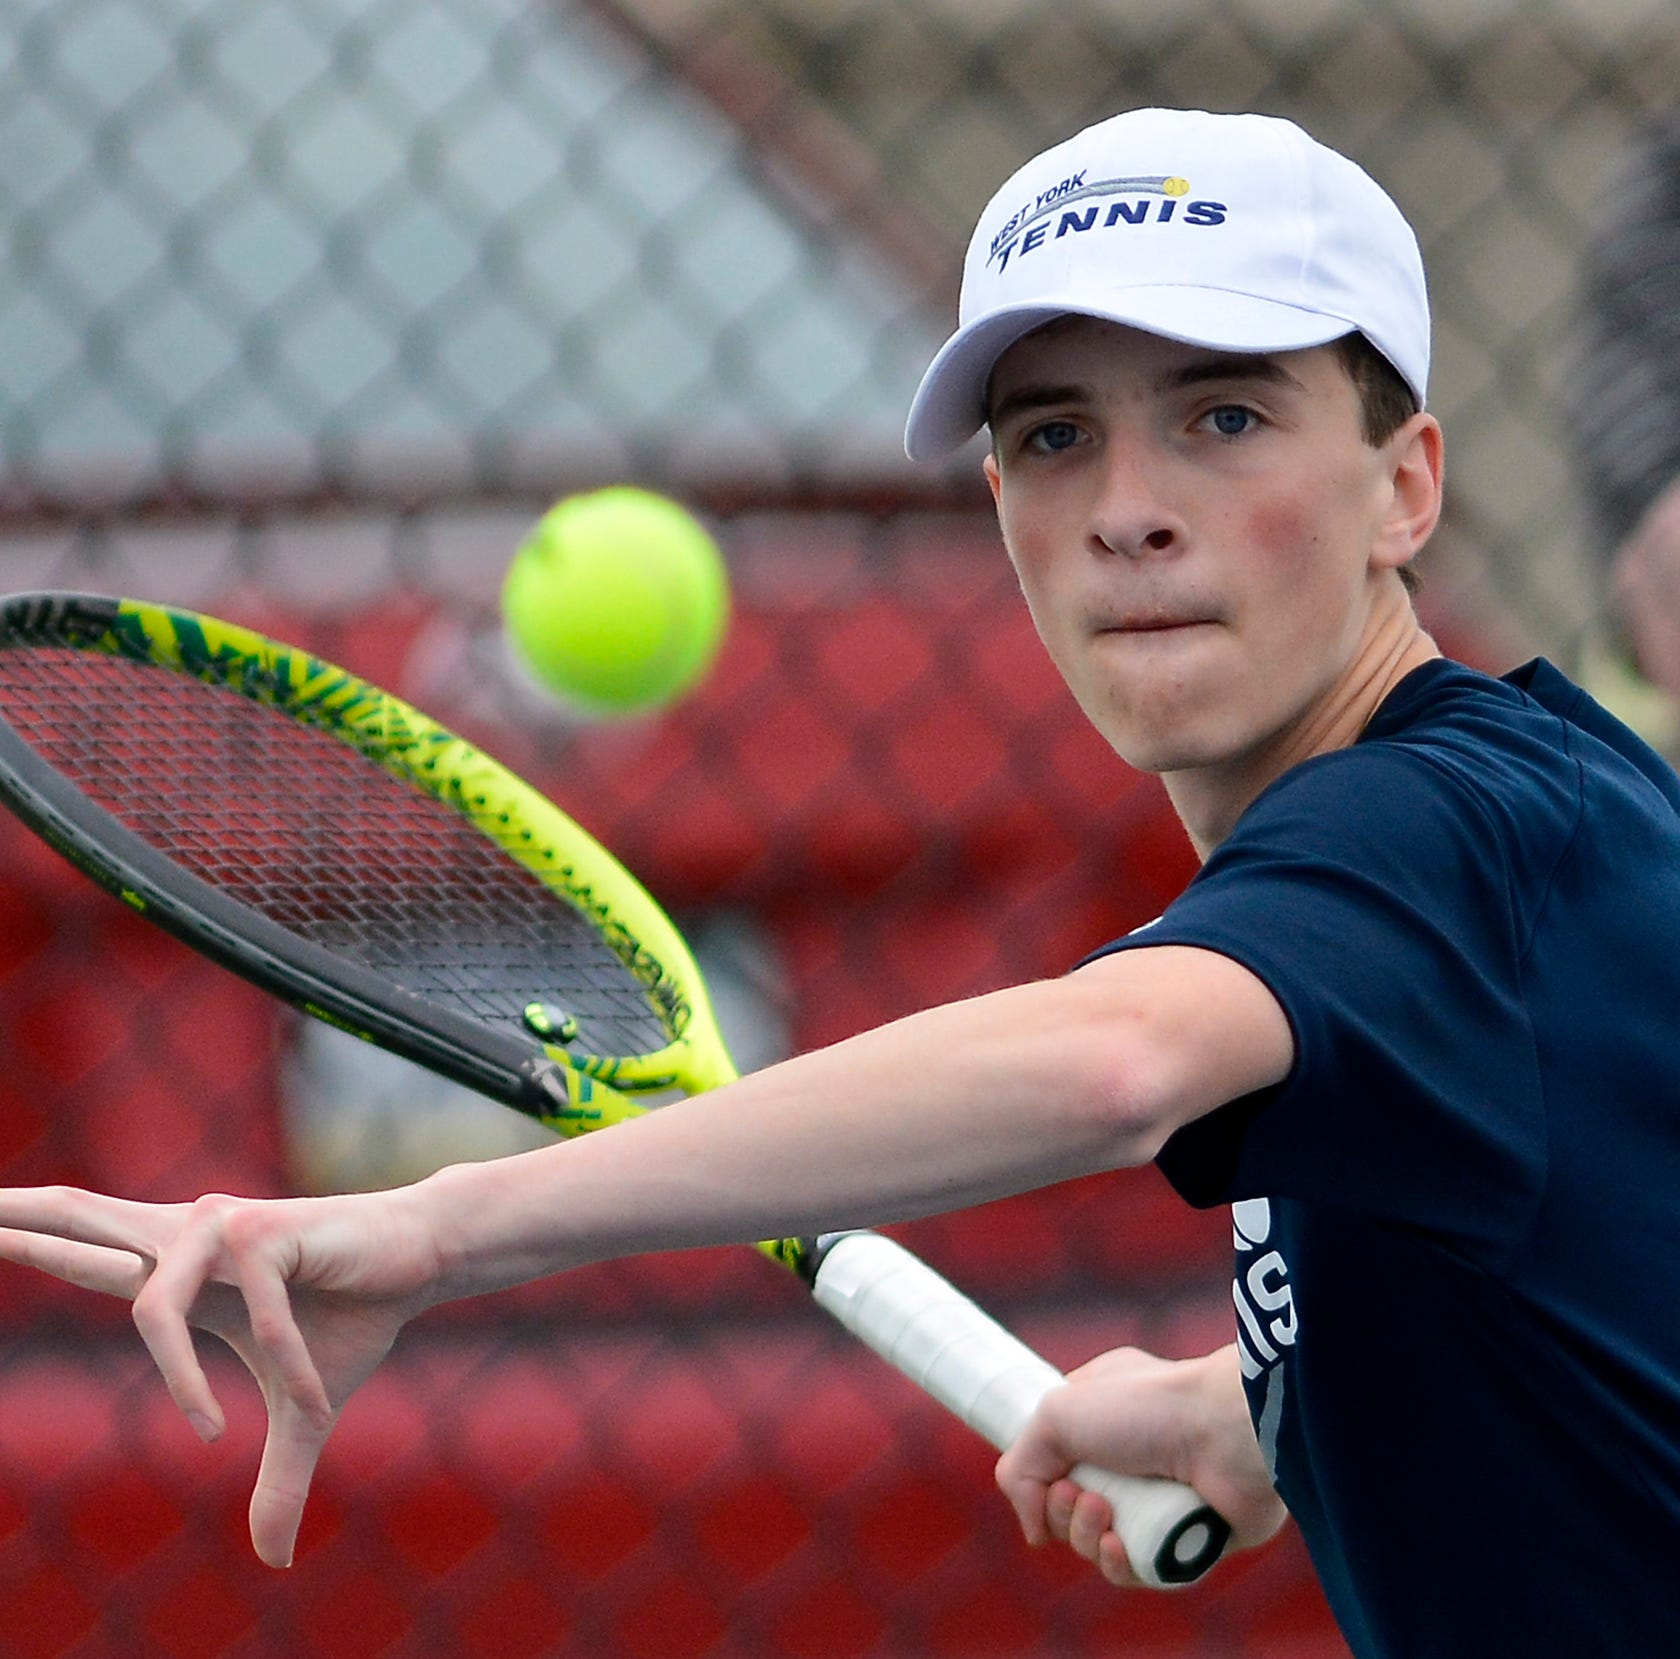 West York High boys' tennis program eyes its first championship in more than 50 years